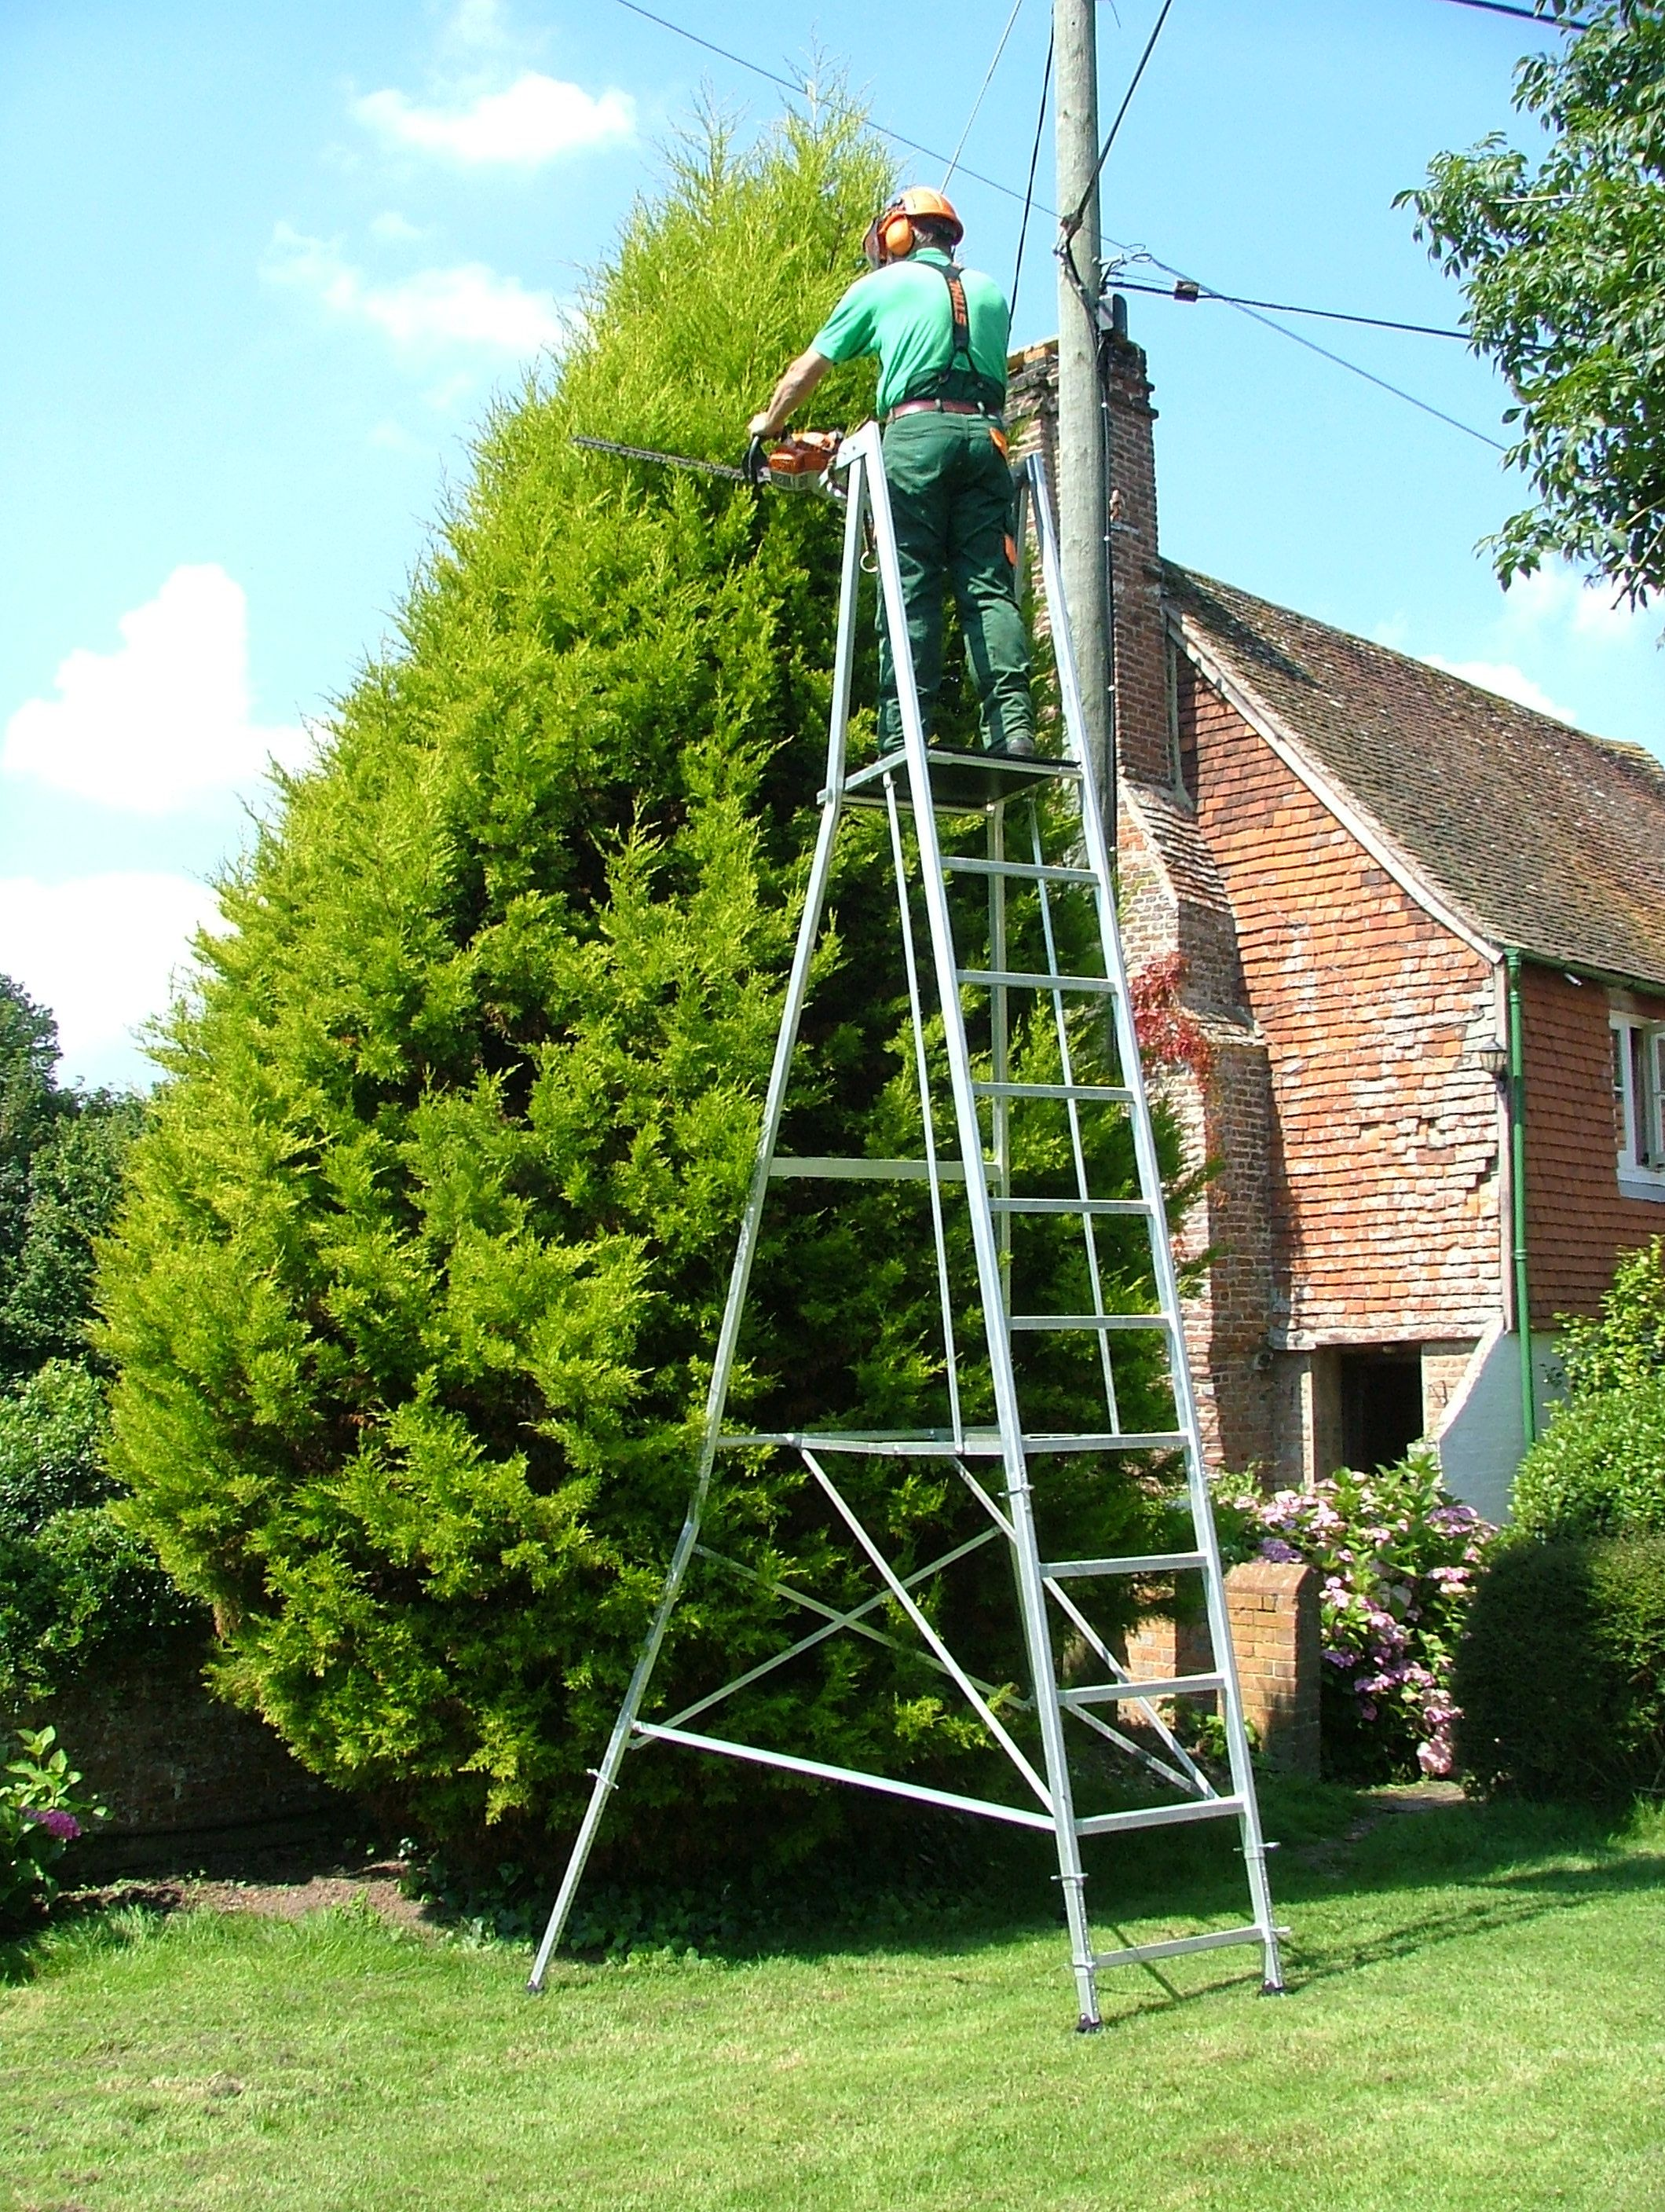 Tree Trimming Tree Pruning Services Georgia Tree Trimming Service Tree Pruning Tree Trimming